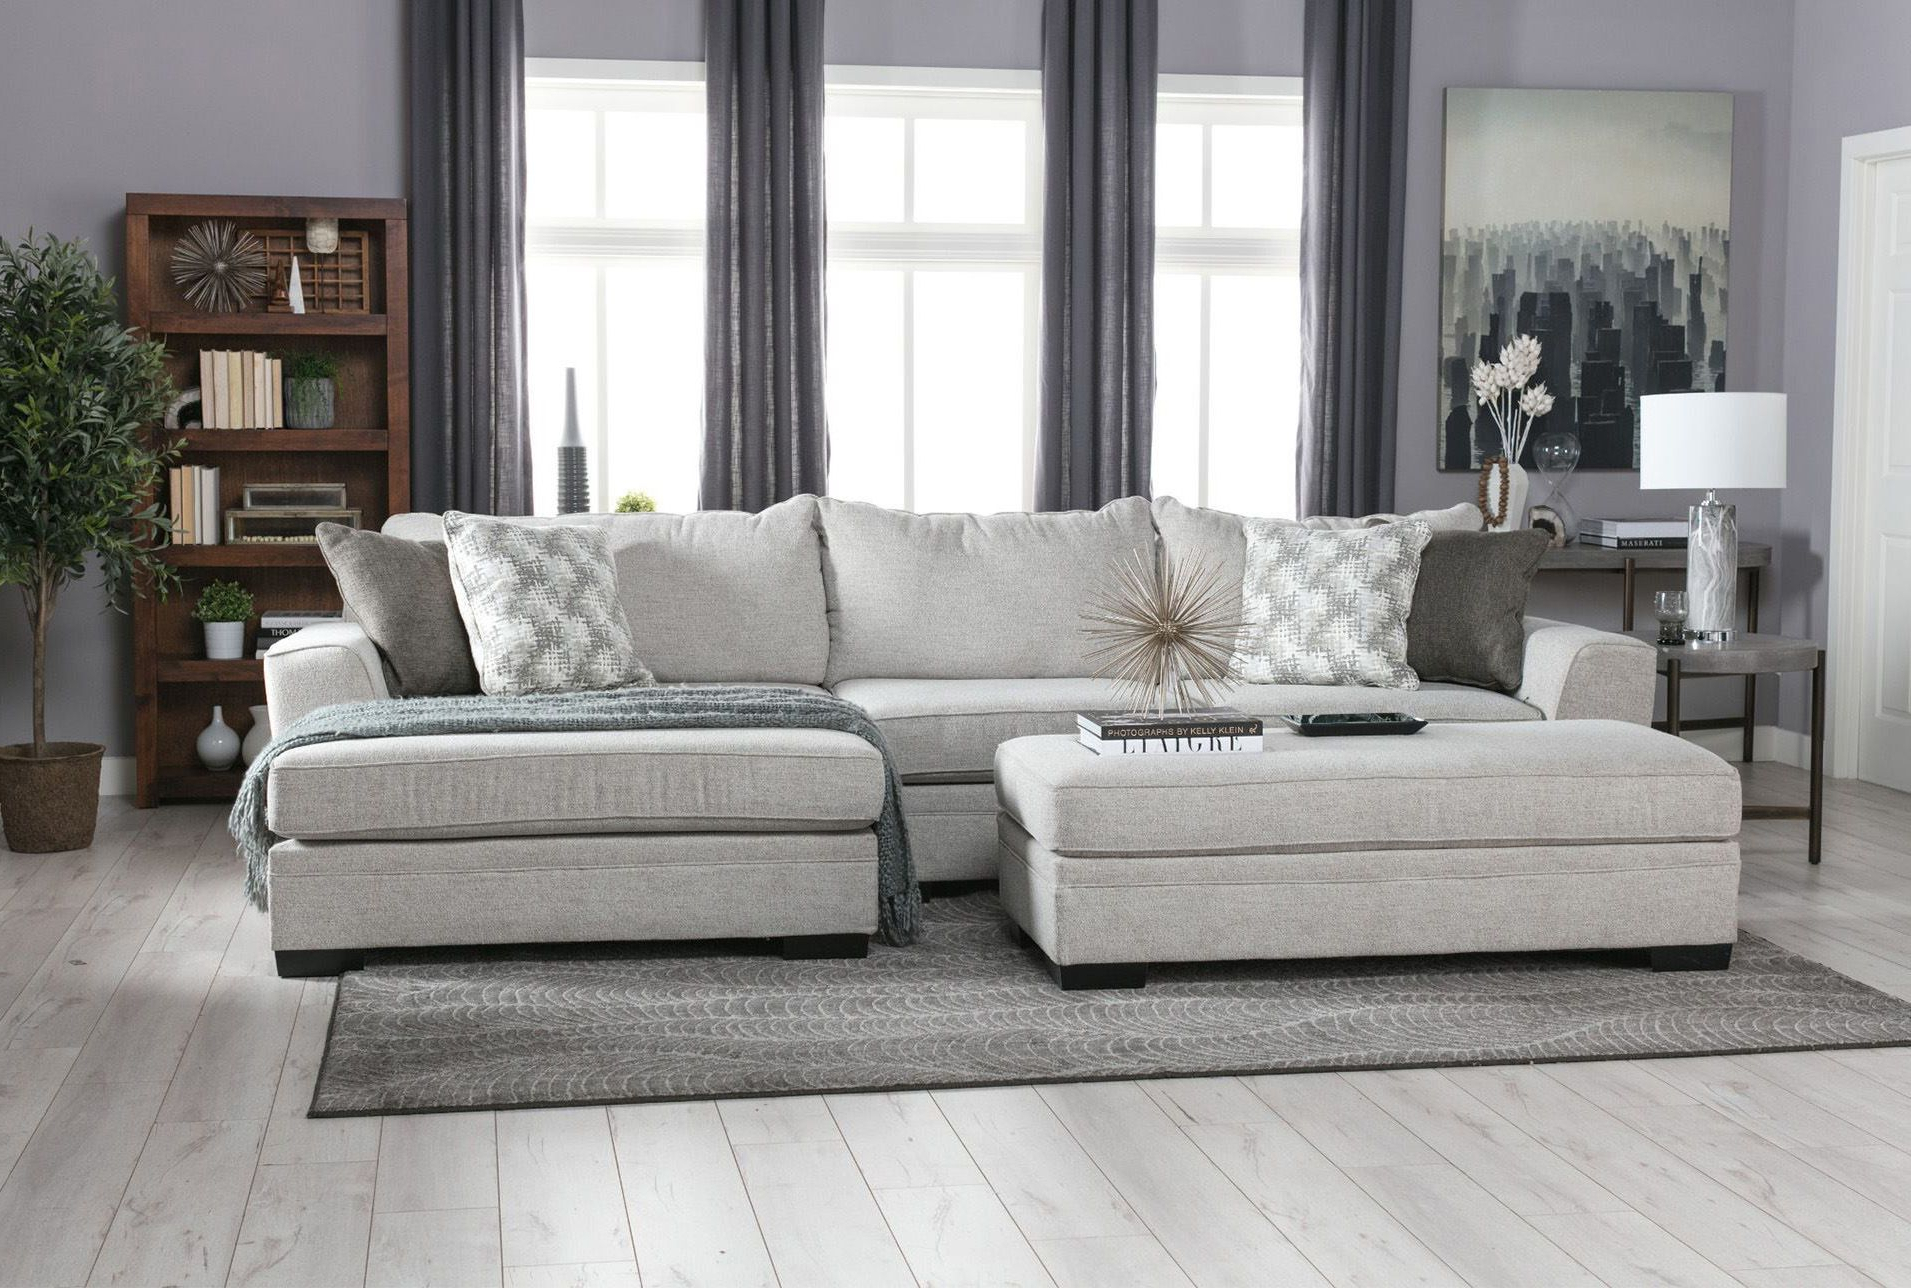 Tatum Dark Grey 2 Piece Sectionals With Raf Chaise In Widely Used Aquarius Light Grey 2 Piece Sectional Wlaf Chaise Minimalist (View 18 of 20)